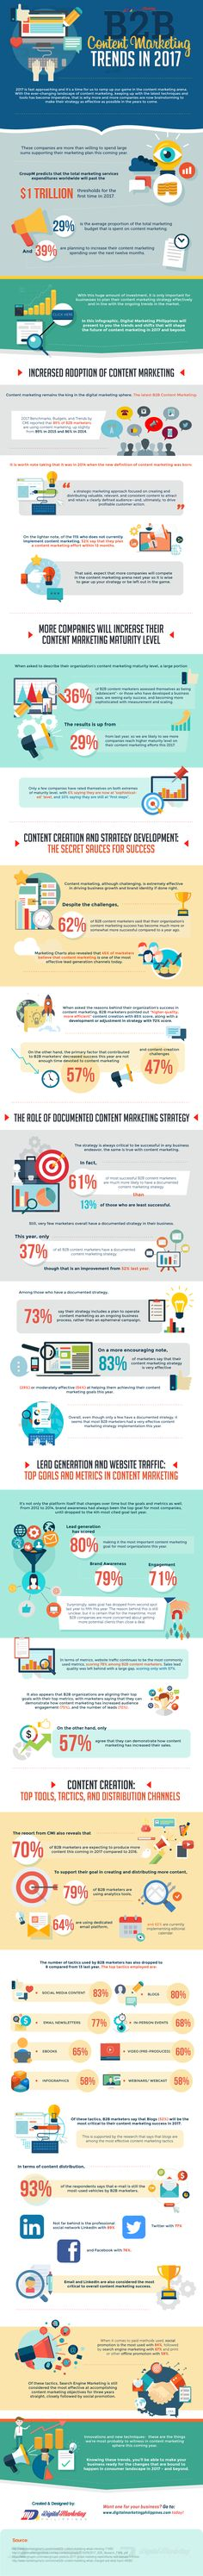 The Top B2B Content Marketing Trends to Watch This Year [Infographic]